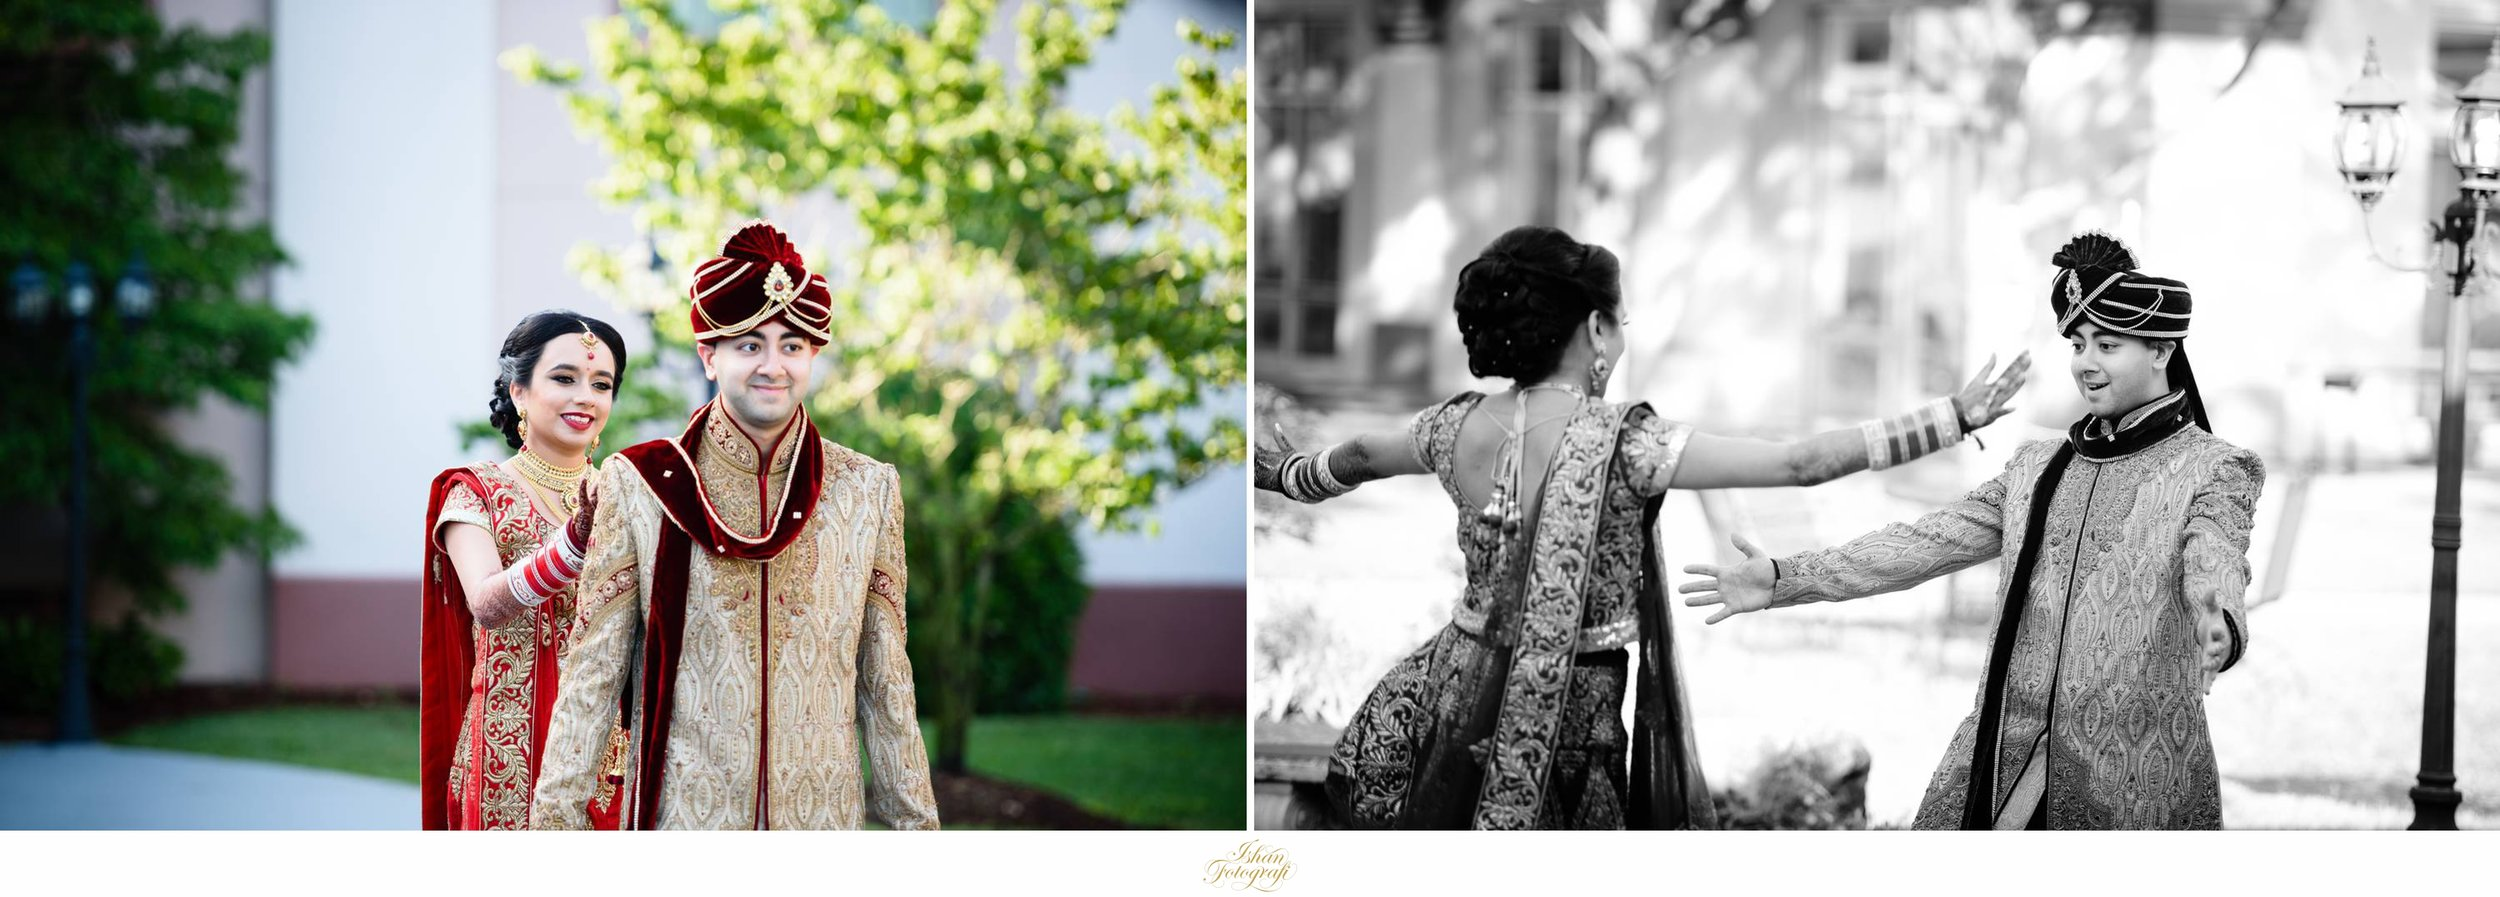 some priceless moments; a beautiful moment between our bride and groom.